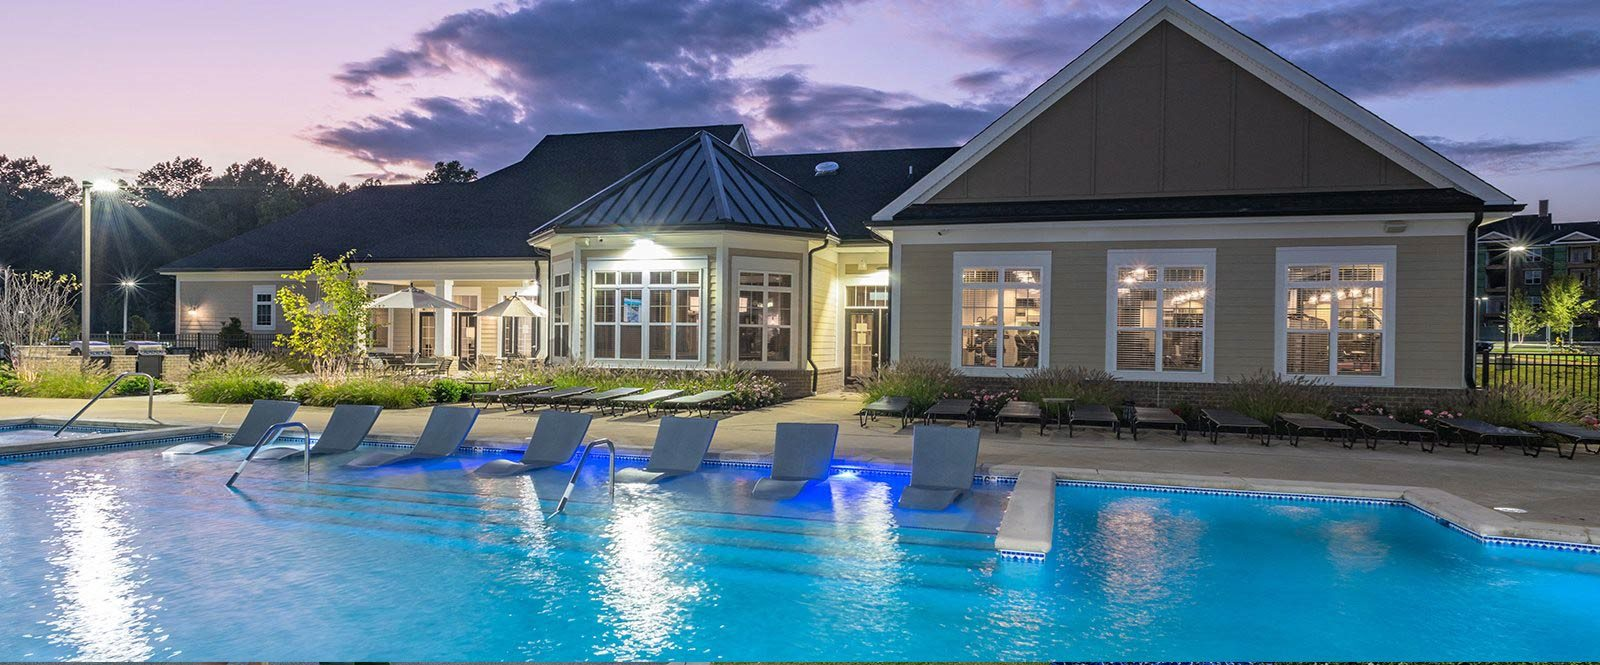 Sparkling Swimming Pool at Abberly Waterstone Apartment Homes by HHHunt, Virginia, 22554